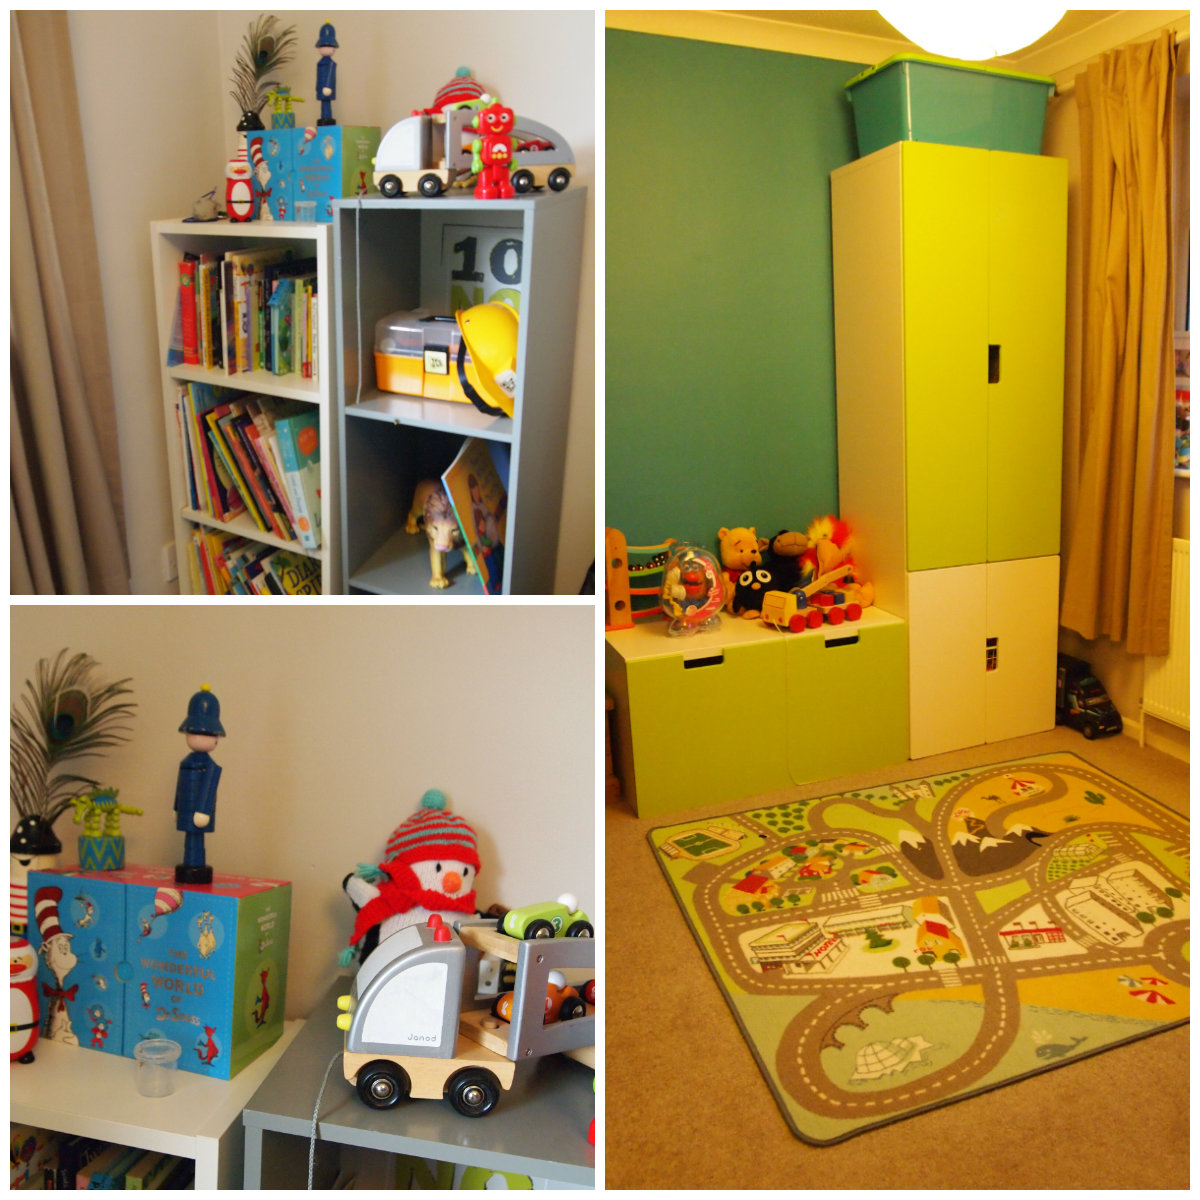 finest ikea childrens bedroom storage ikea expedit shelf